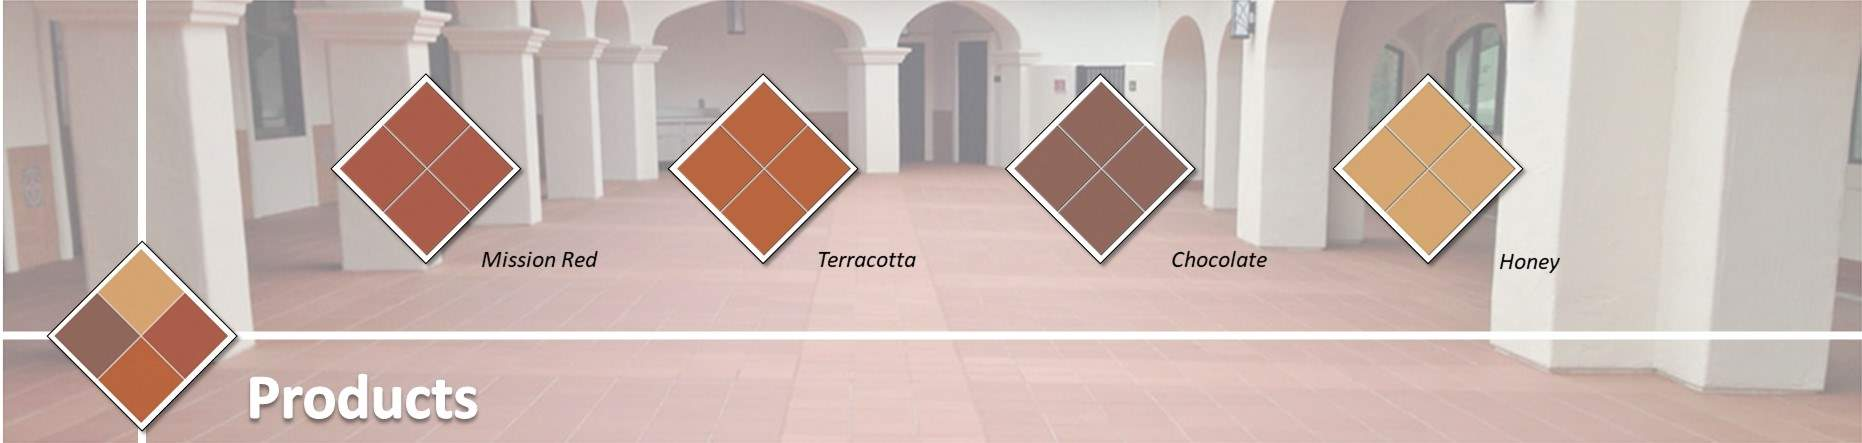 Products-Banner-Terratile-clay-tiles-terracotta-distributor-manufacture-wholesale-dealer-bulk-prices-construction-custom-remodel-project-residential-commercial-house-honey